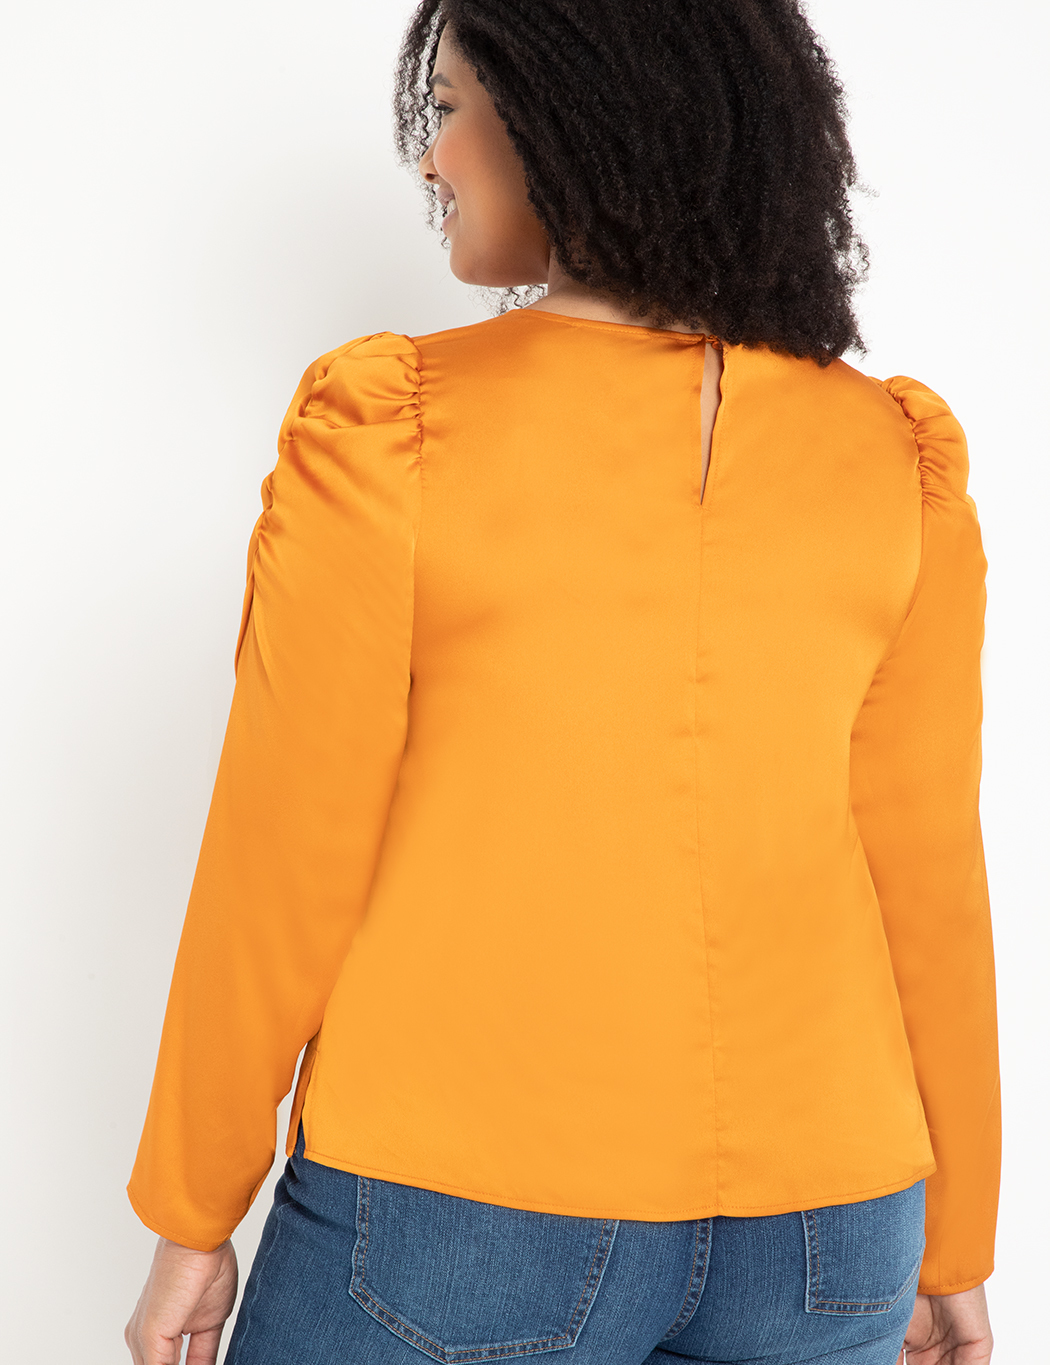 Long Sleeve Top with Puff Shoulders